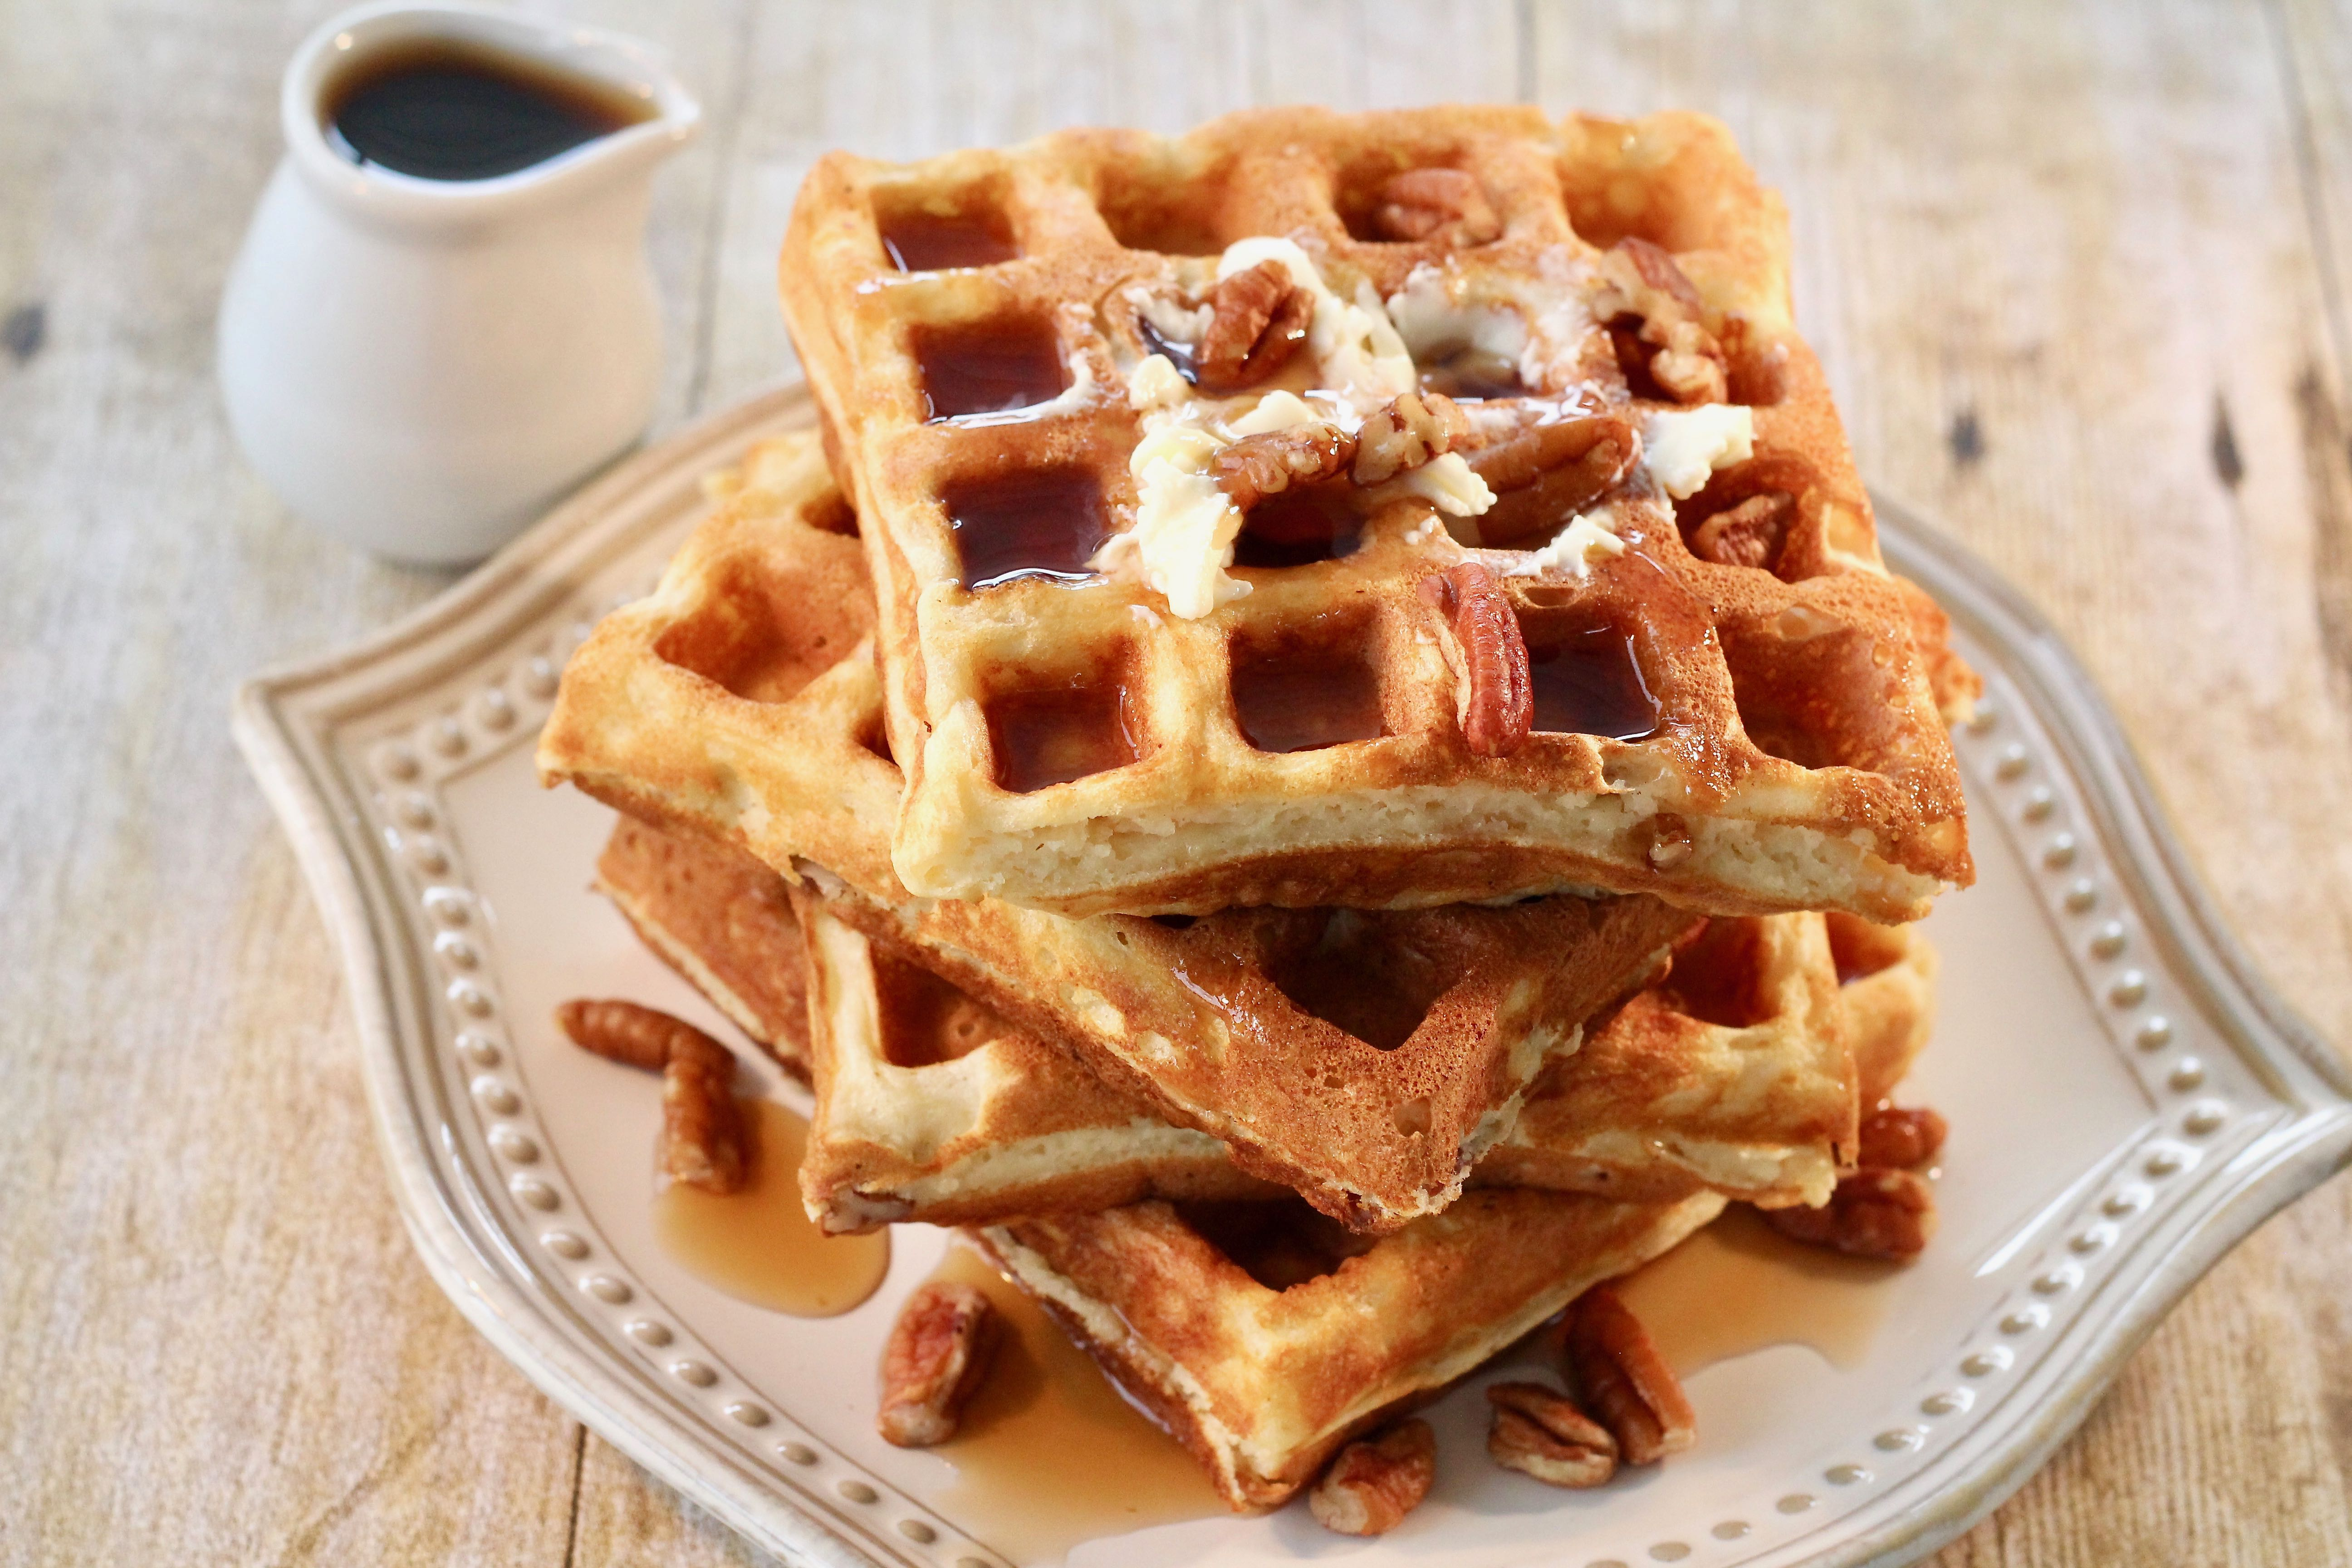 """Crispy on the outside, soft on the inside, with a little crunch from the pecans,"" says lutzflcat. ""Keep waffles warm in the oven as they complete cooking and come off the waffle iron. The ricotta adds tenderness, richness, and great texture to the waffles. Breakfast, brunch, or breakfast-for-dinner never looked better! Serve with butter, maple syrup, and additional pecans, if desired."""